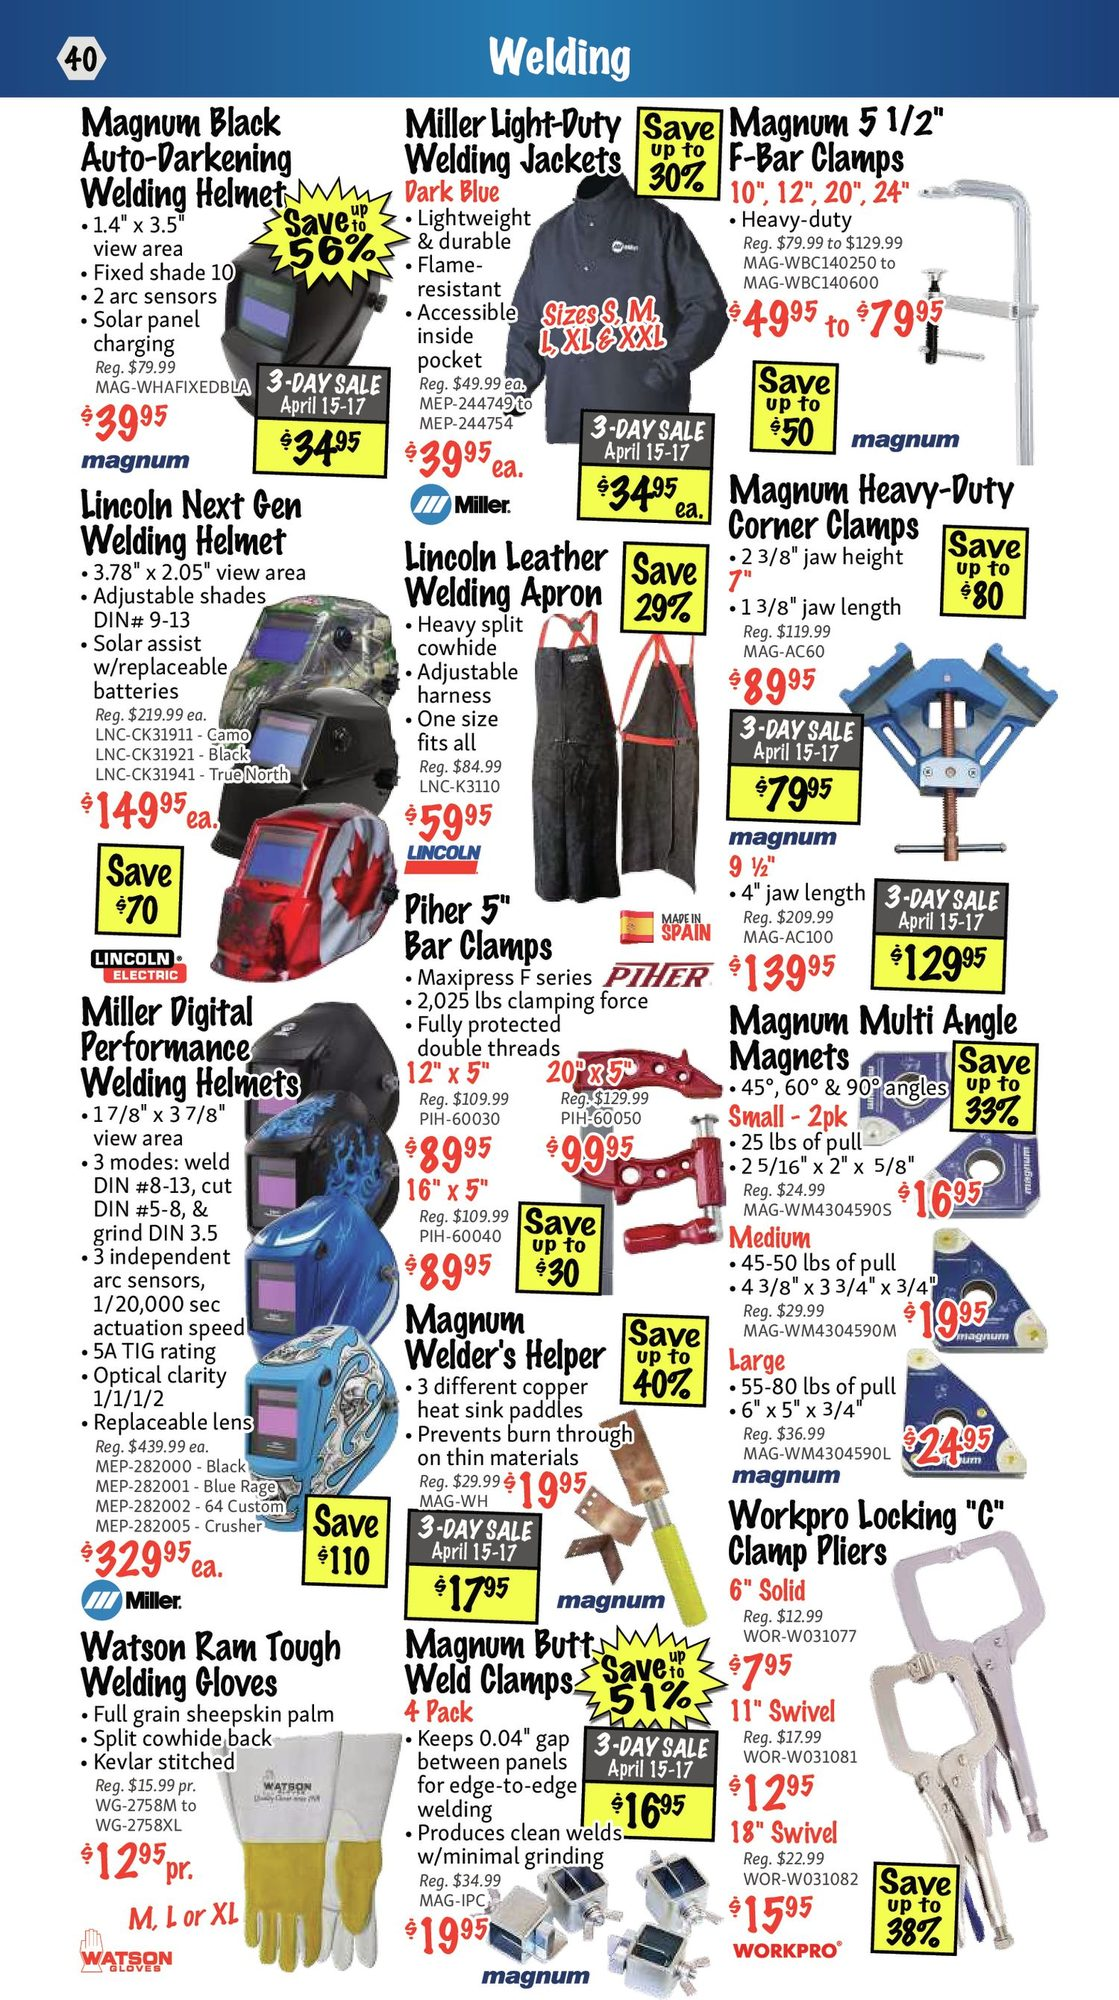 KMS Tools - Hand Tools, Air Tools & Compressor Sale - Page 40